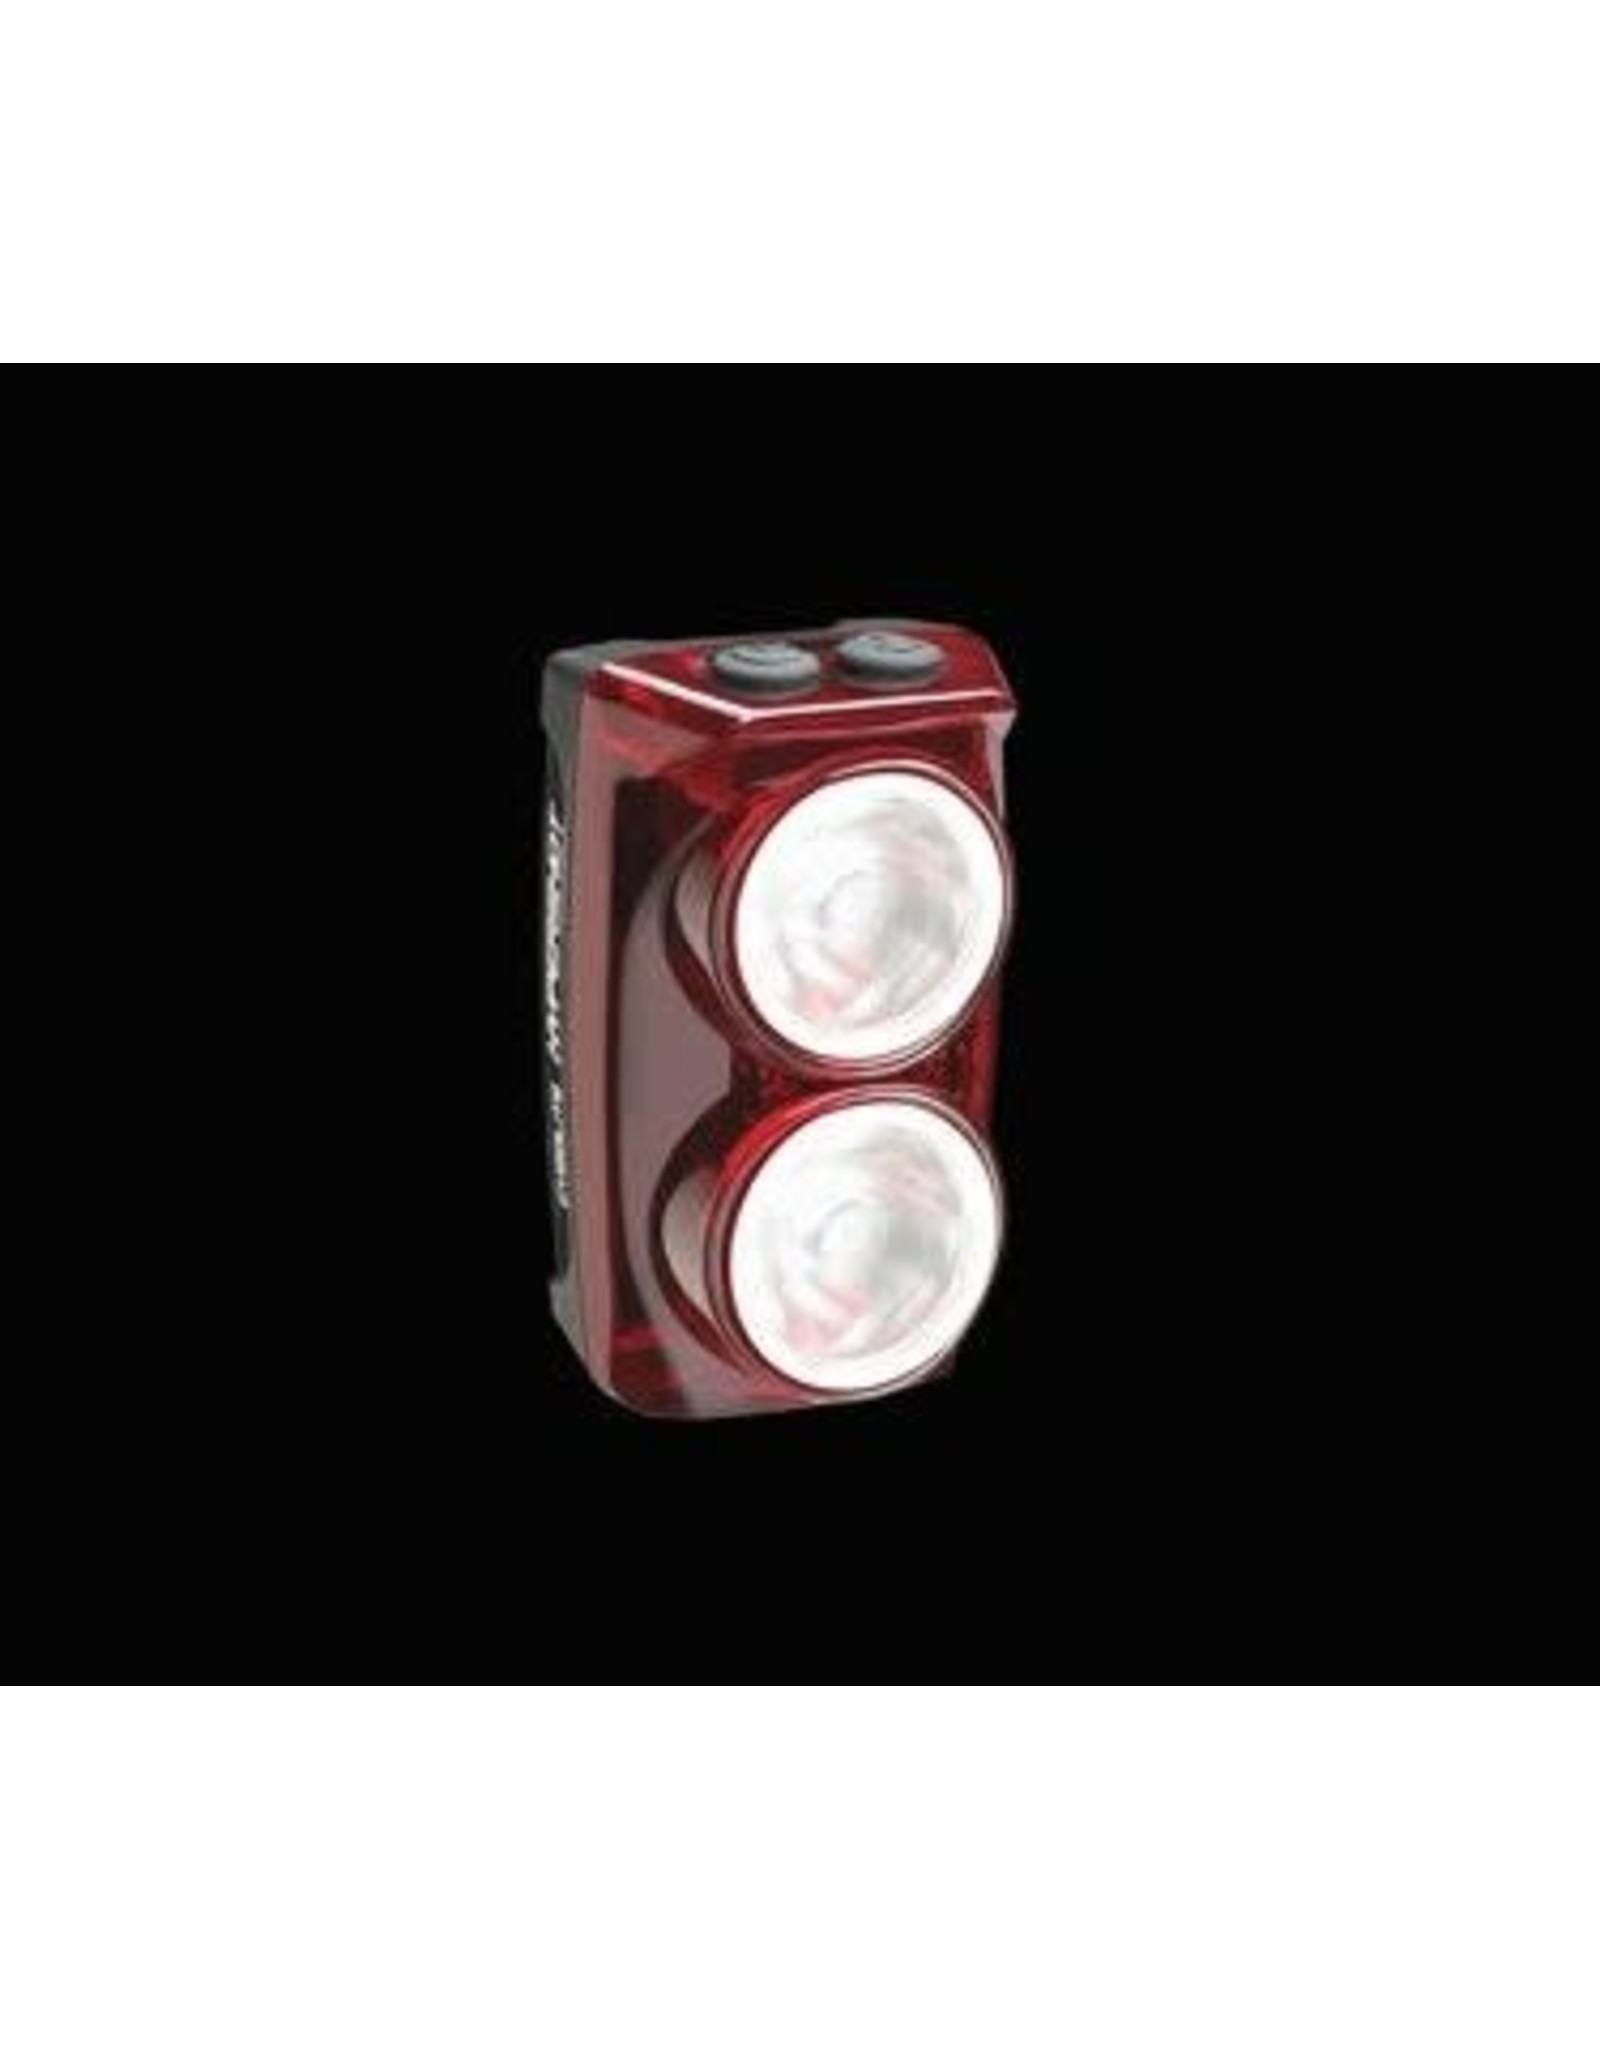 Cygolite Hypershot 250 Rechargeable Taillight